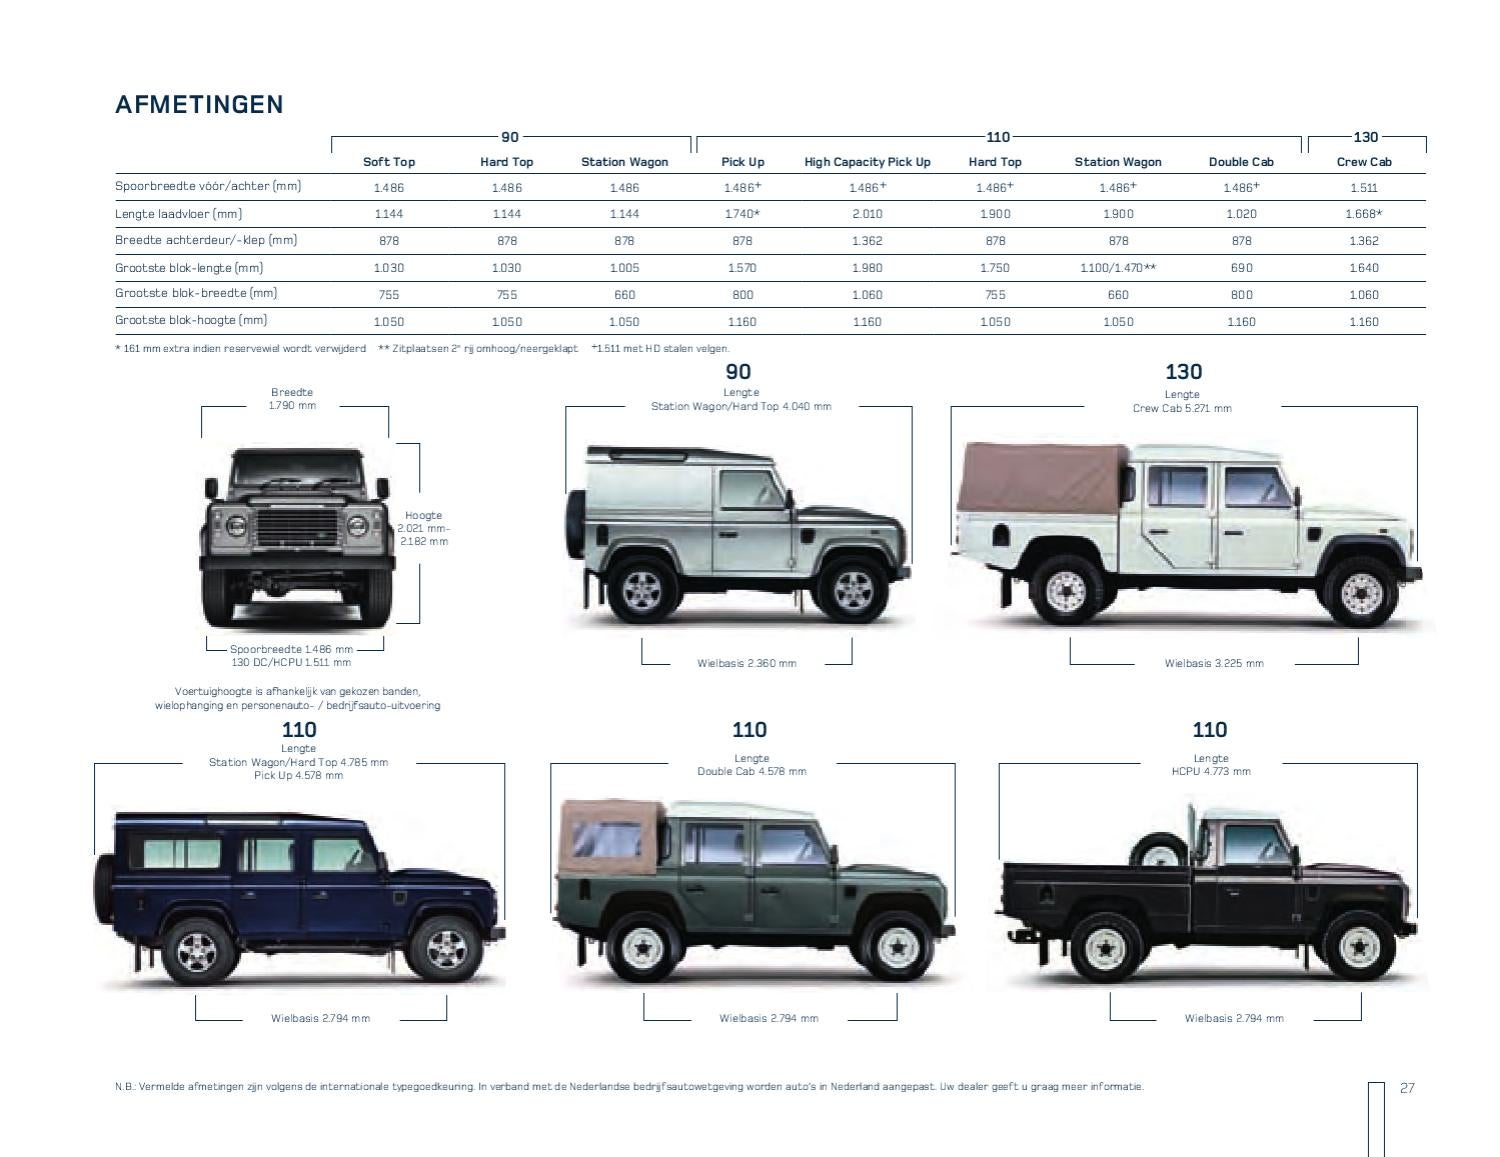 2010 Land Rover Defender Brochure Nl By Ted Sluymer Page